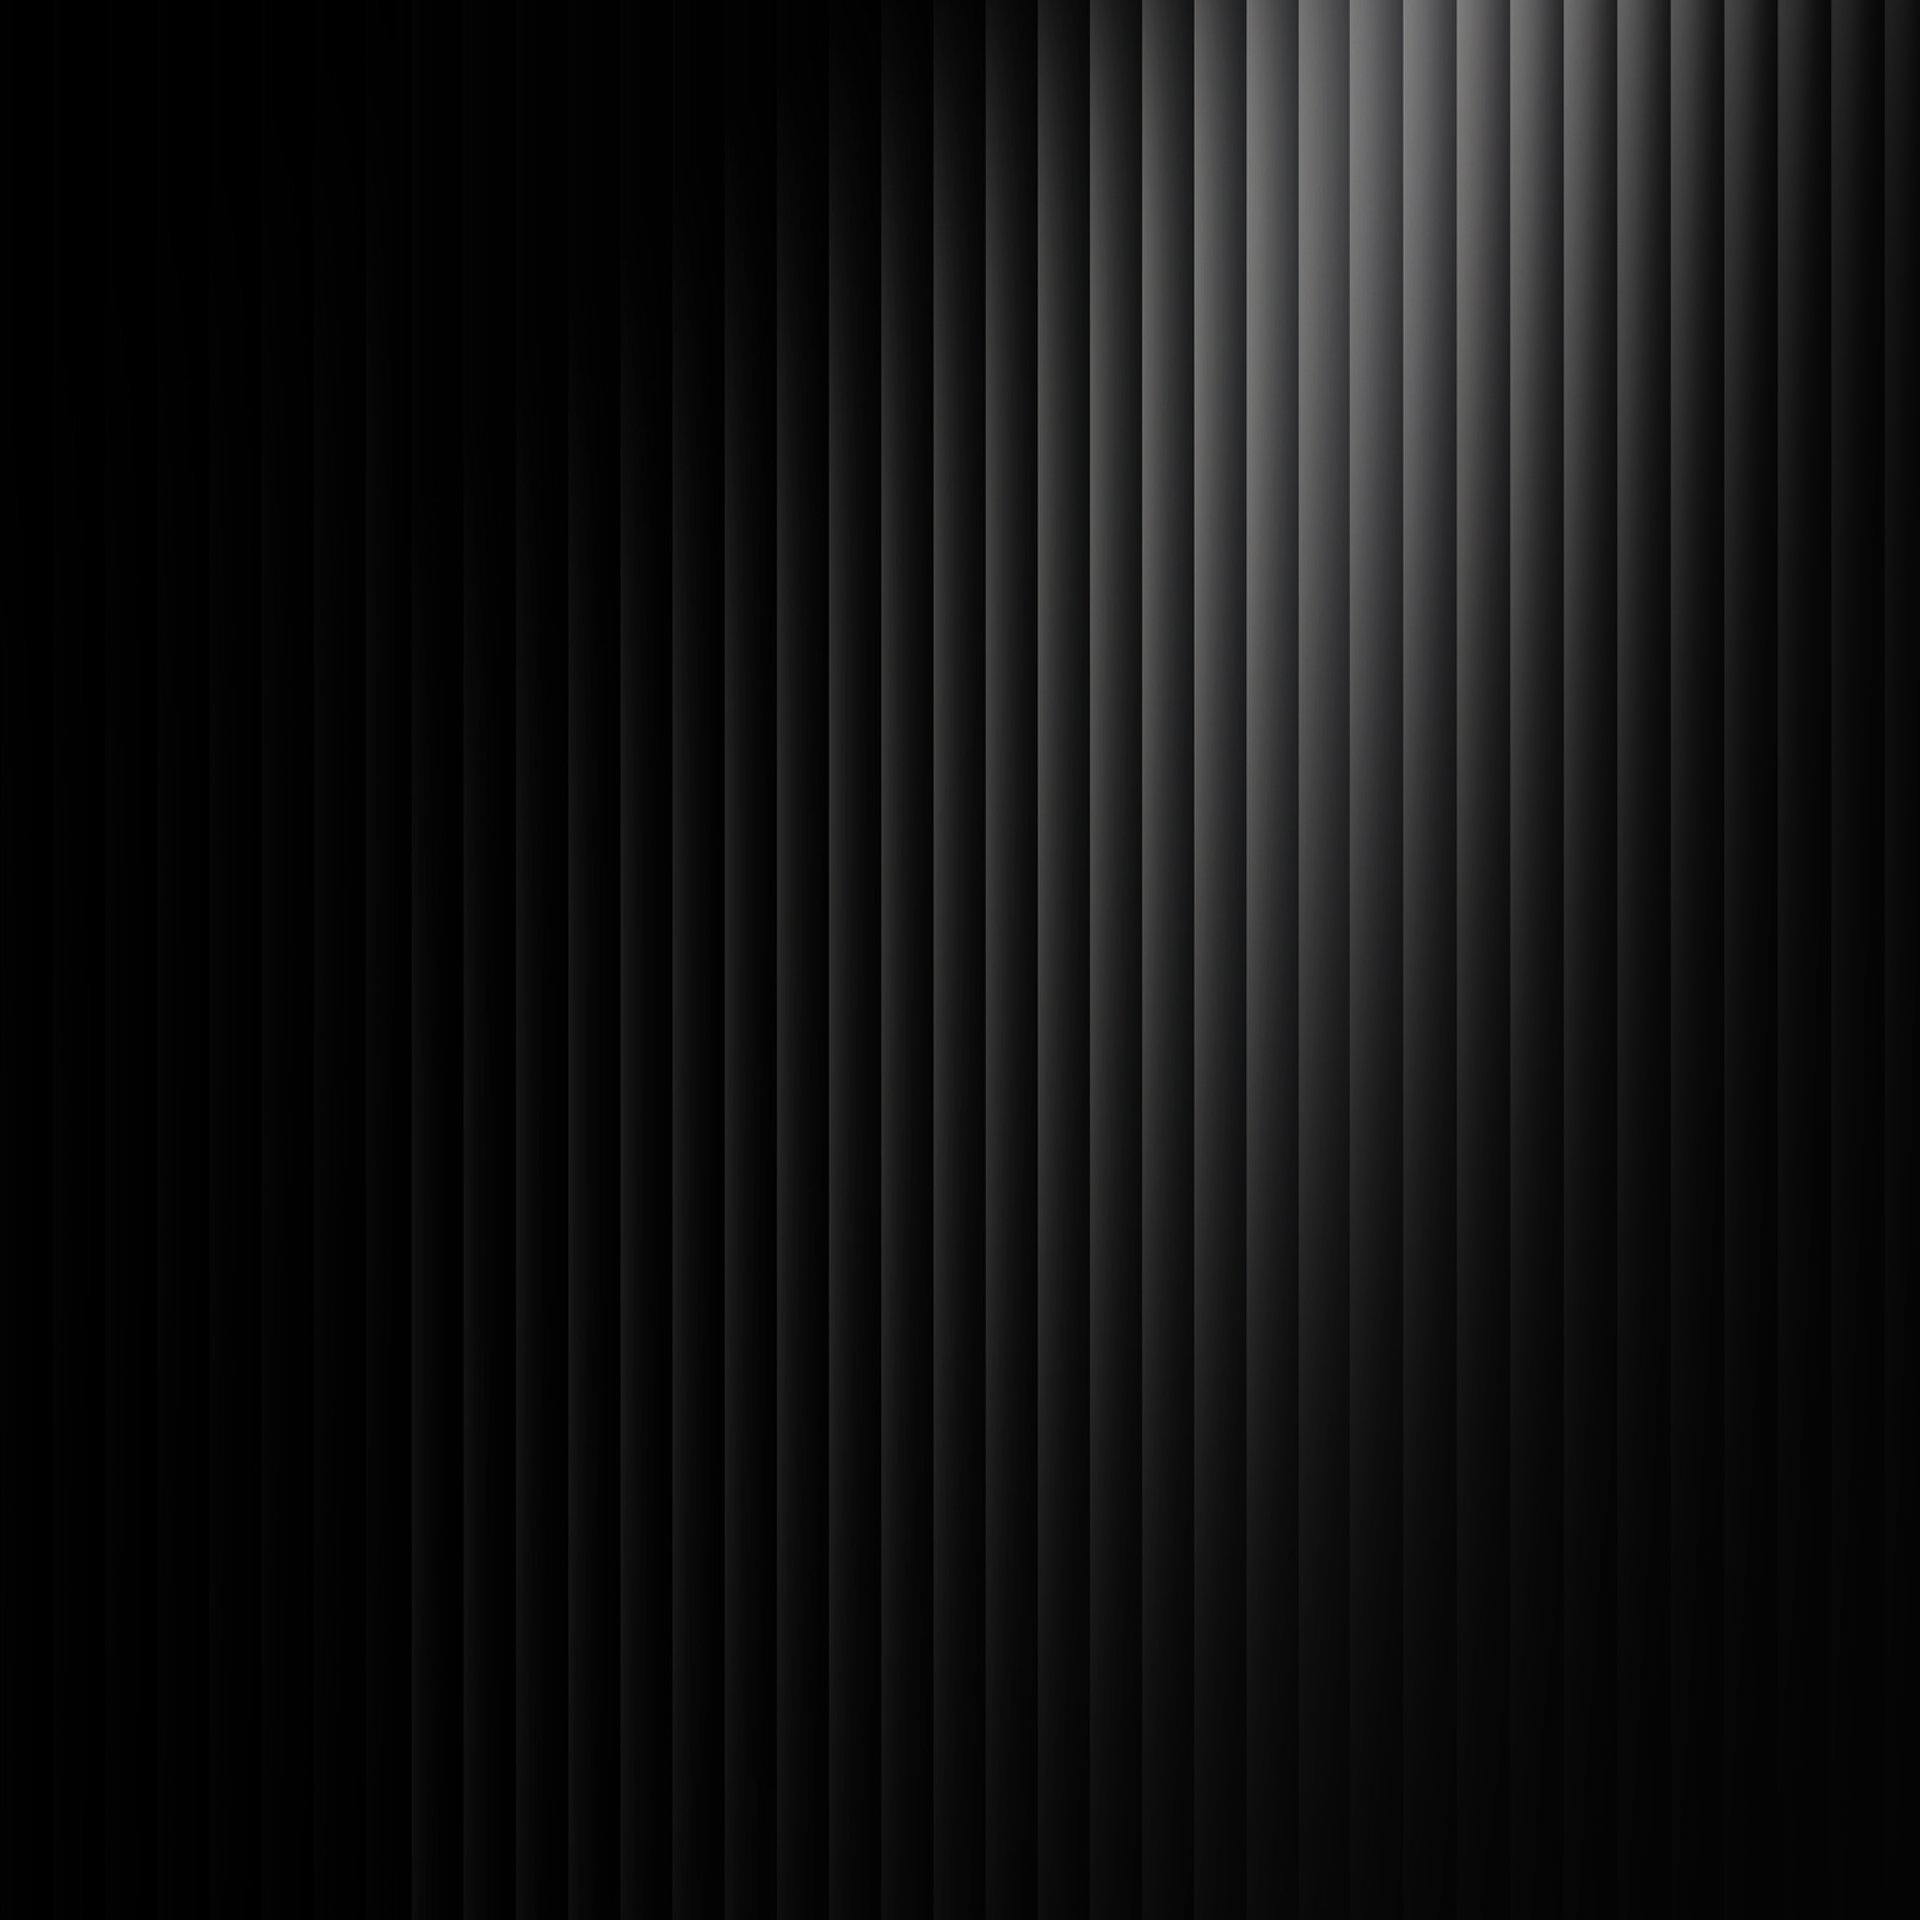 Galaxy S4 Black Edition Wallpaper